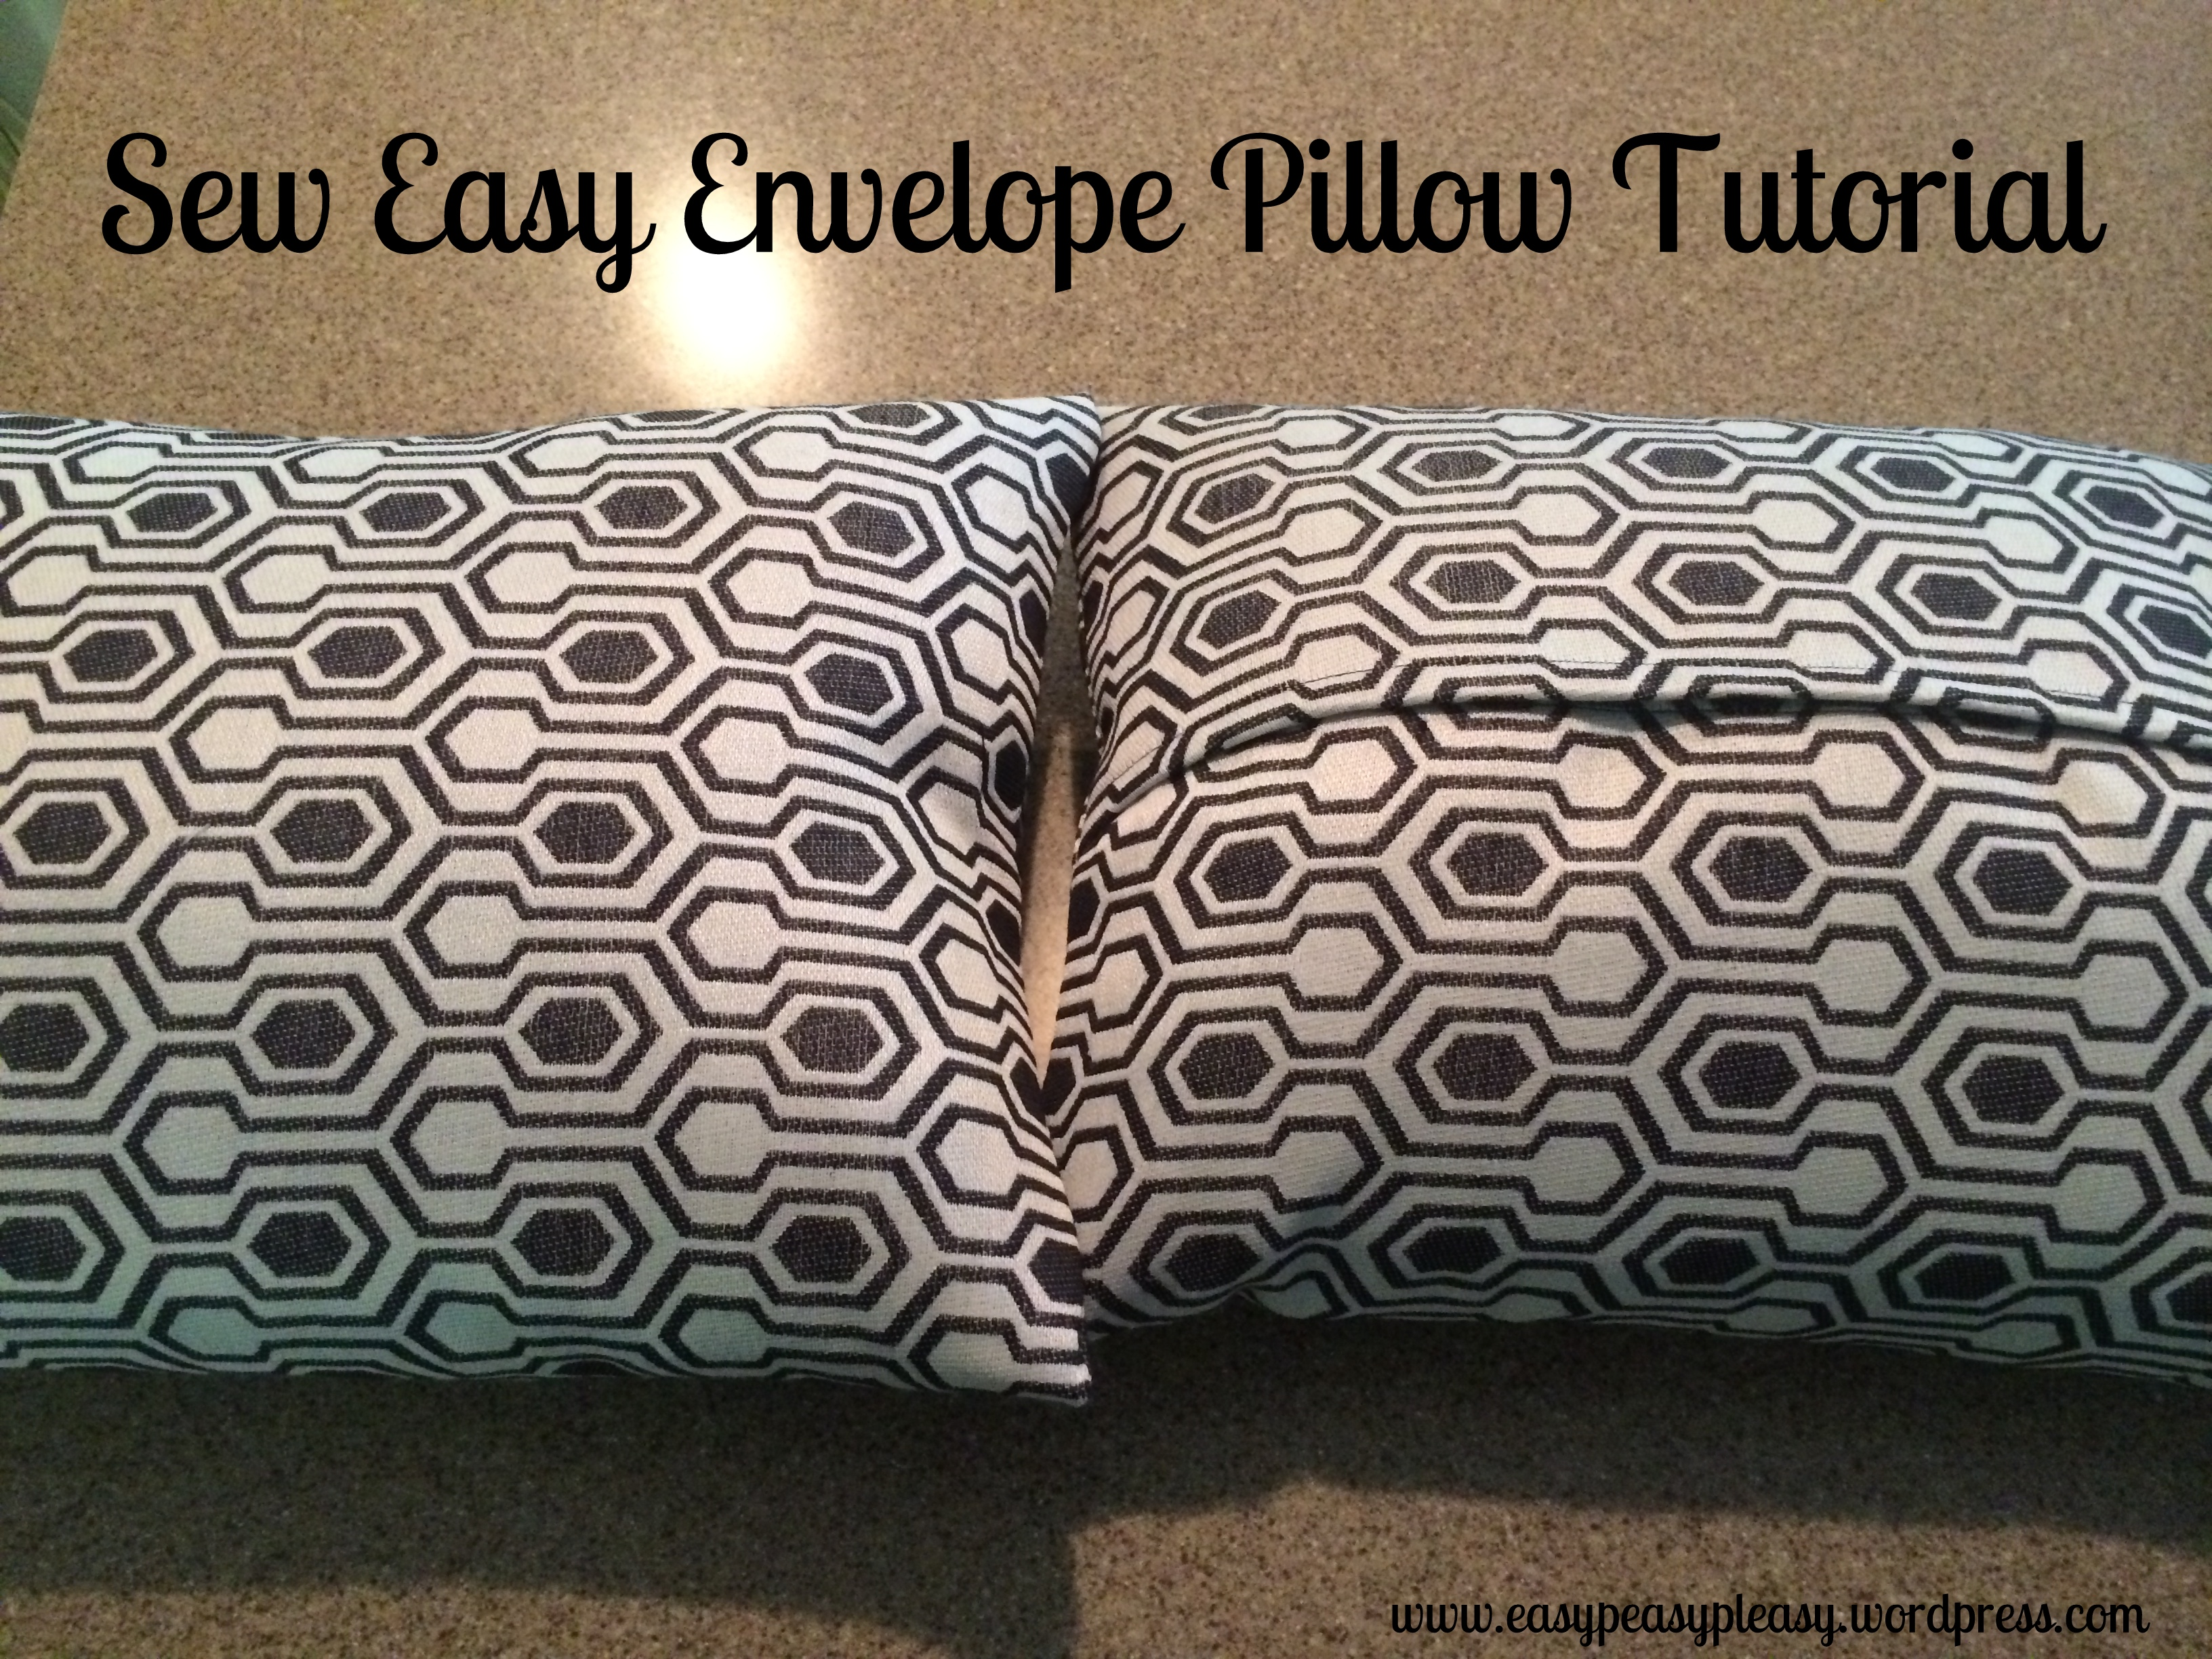 Sew Easy Envelope Pillow Cover Easy Peasy Pleasy